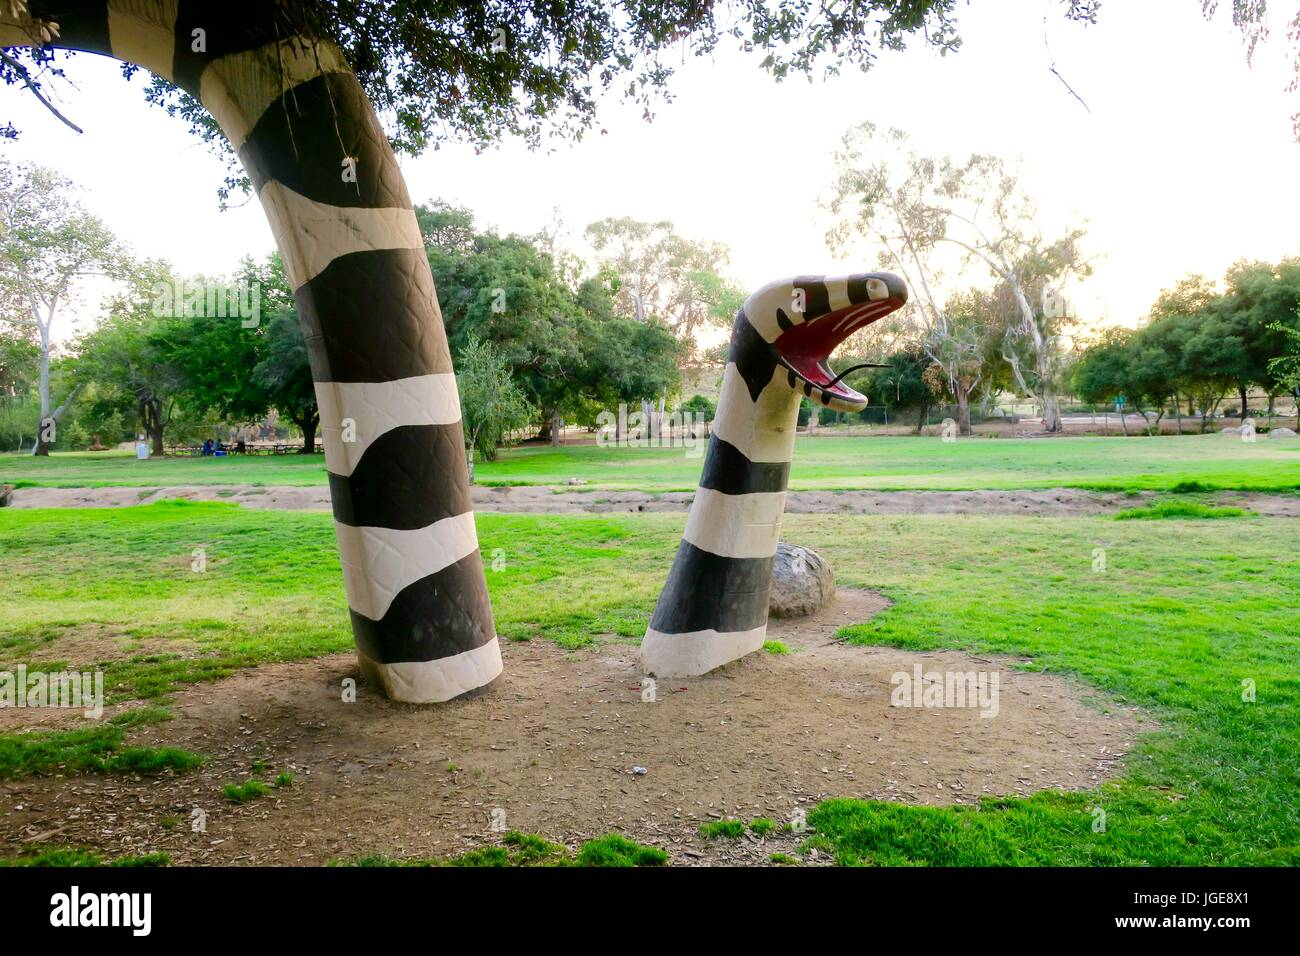 Large black and white striped free-form concrete snake at Kit Carson Park, Escondido, CA - Stock Image